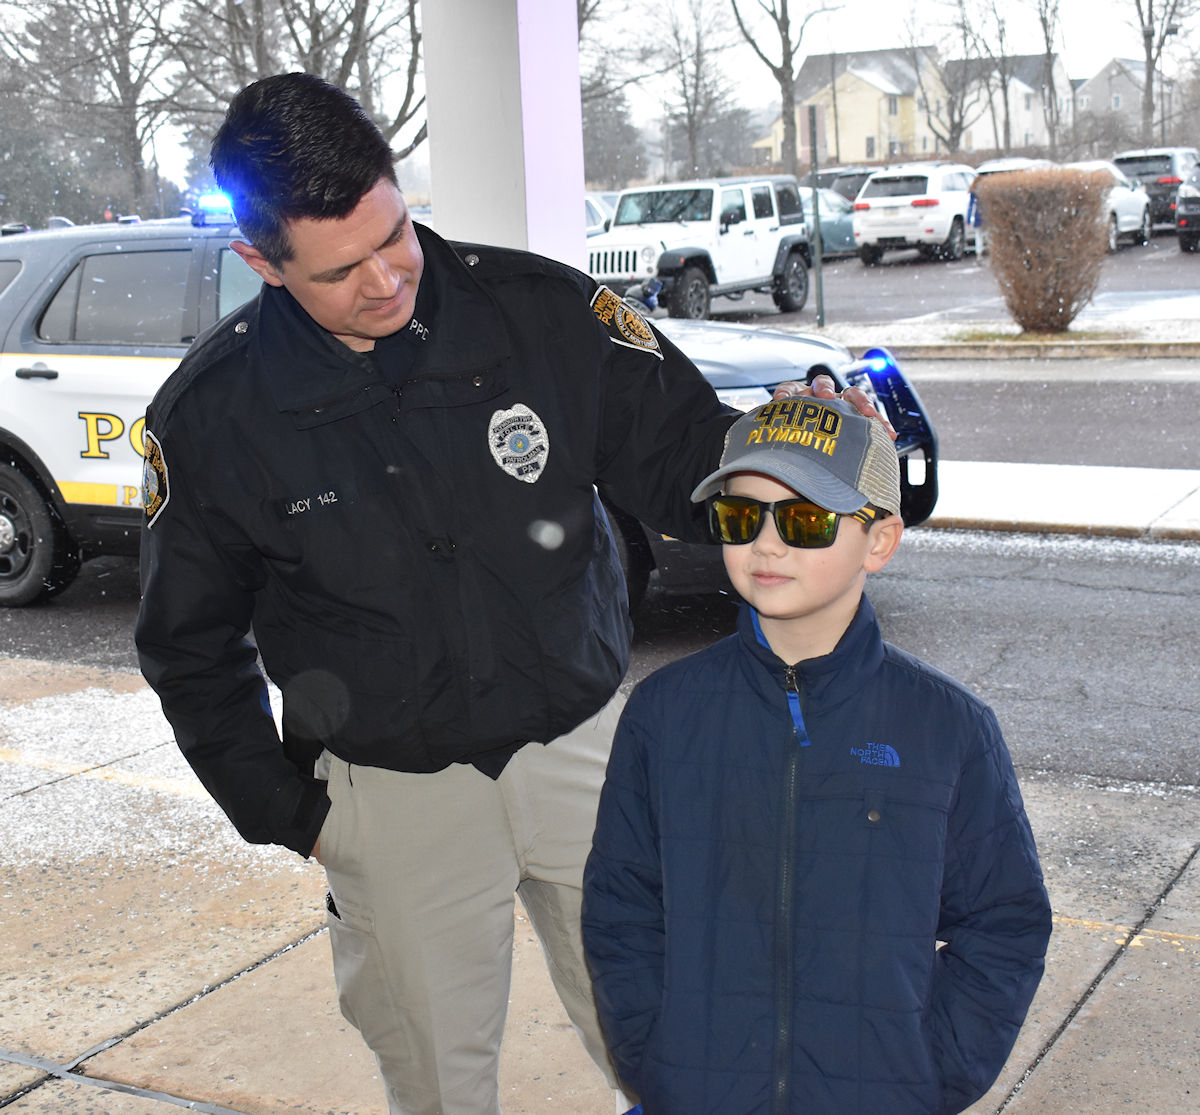 Police officer standing with student